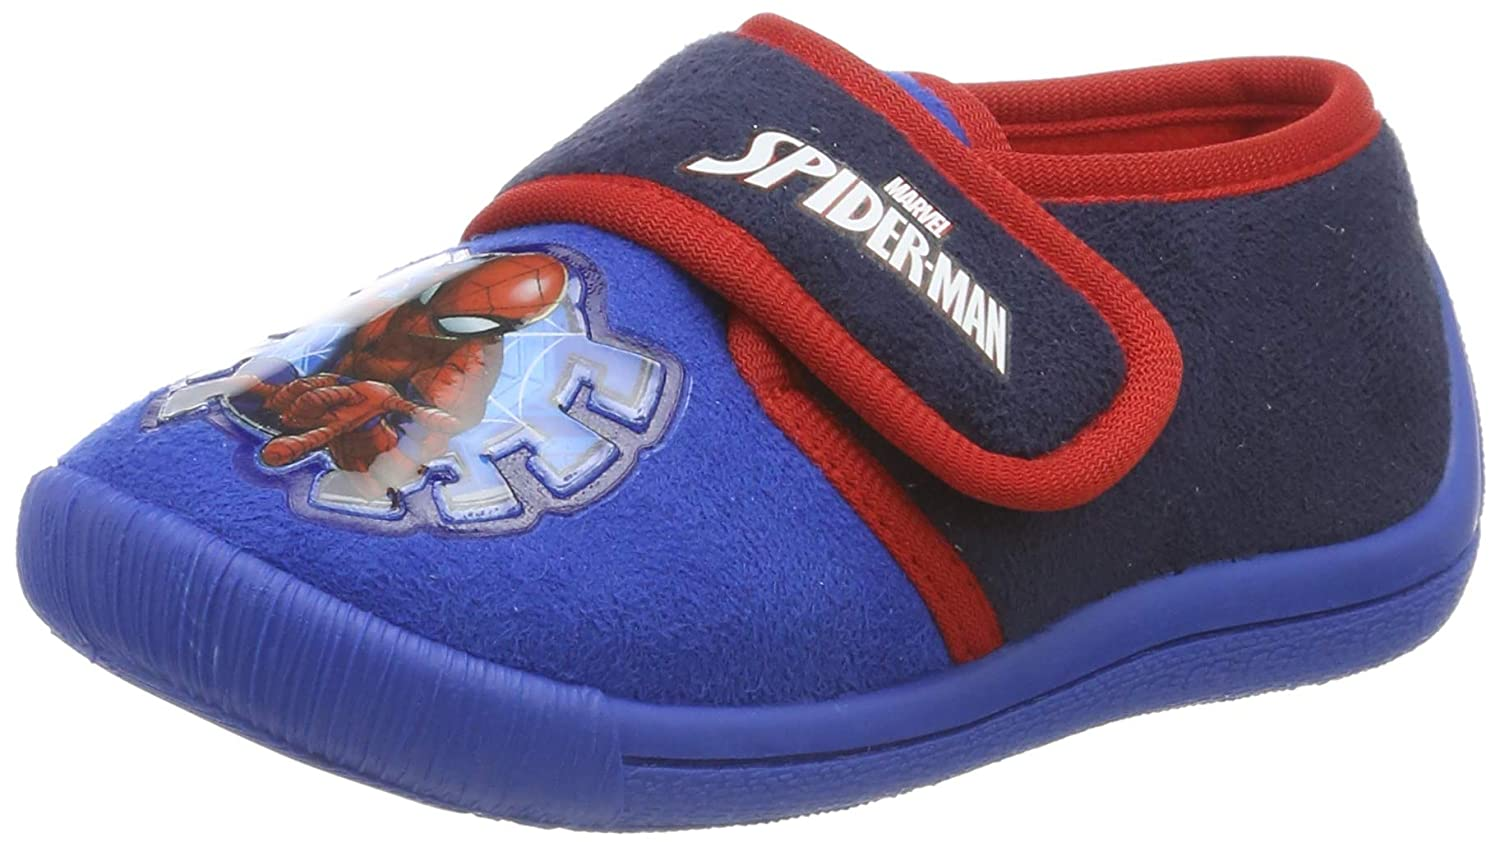 Spiderman Boys Kids Velcro Low Houseshoes Top Slippers